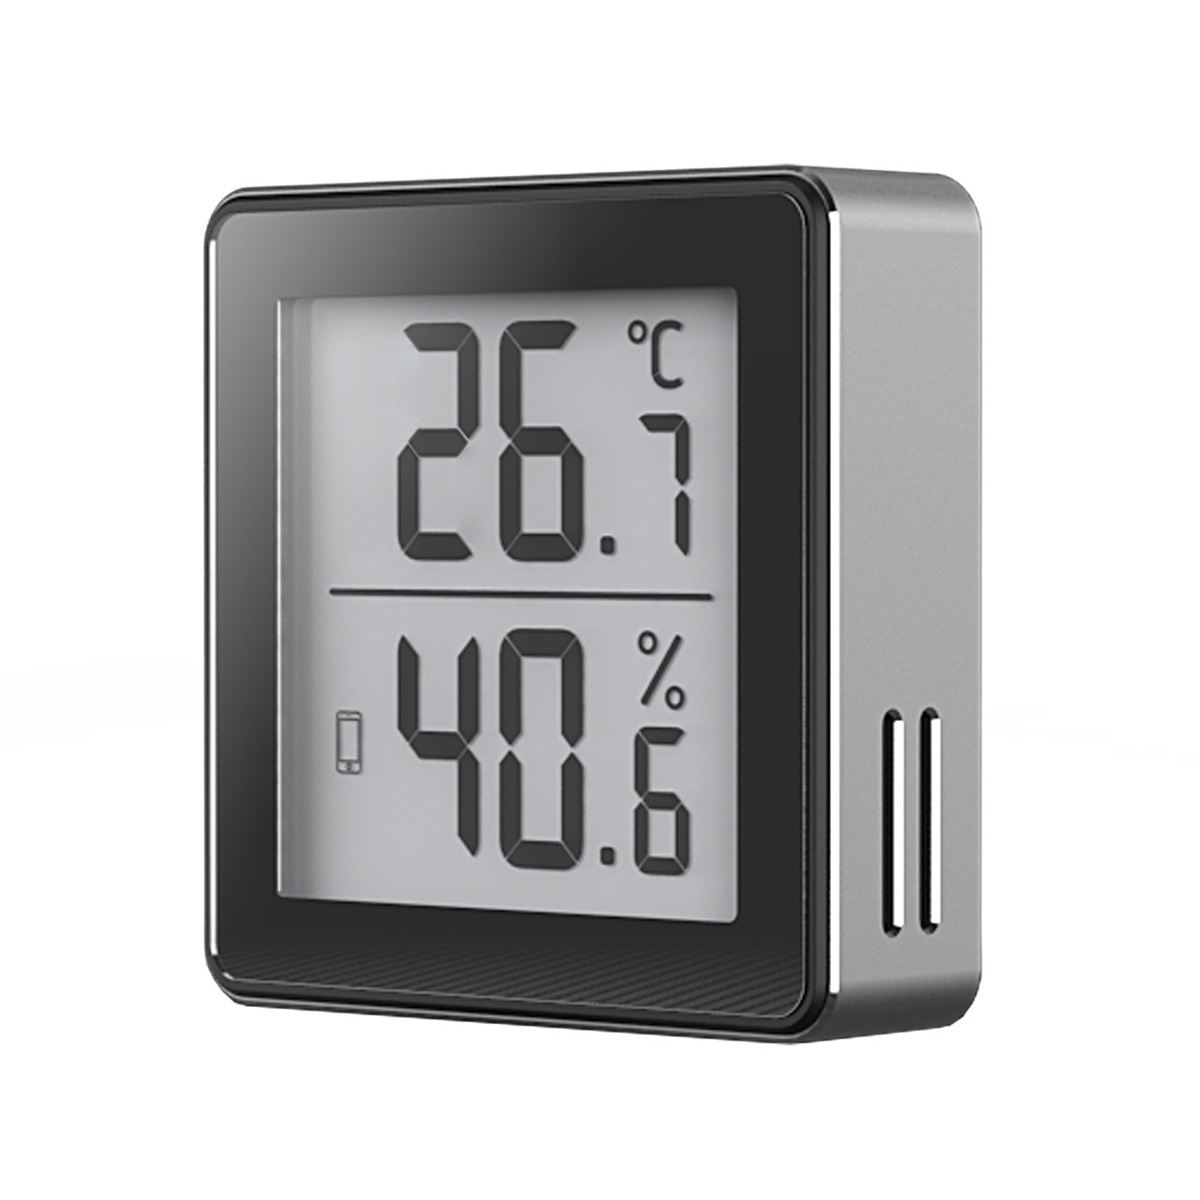 Bluetooth Hygrometer Thermometer WS010